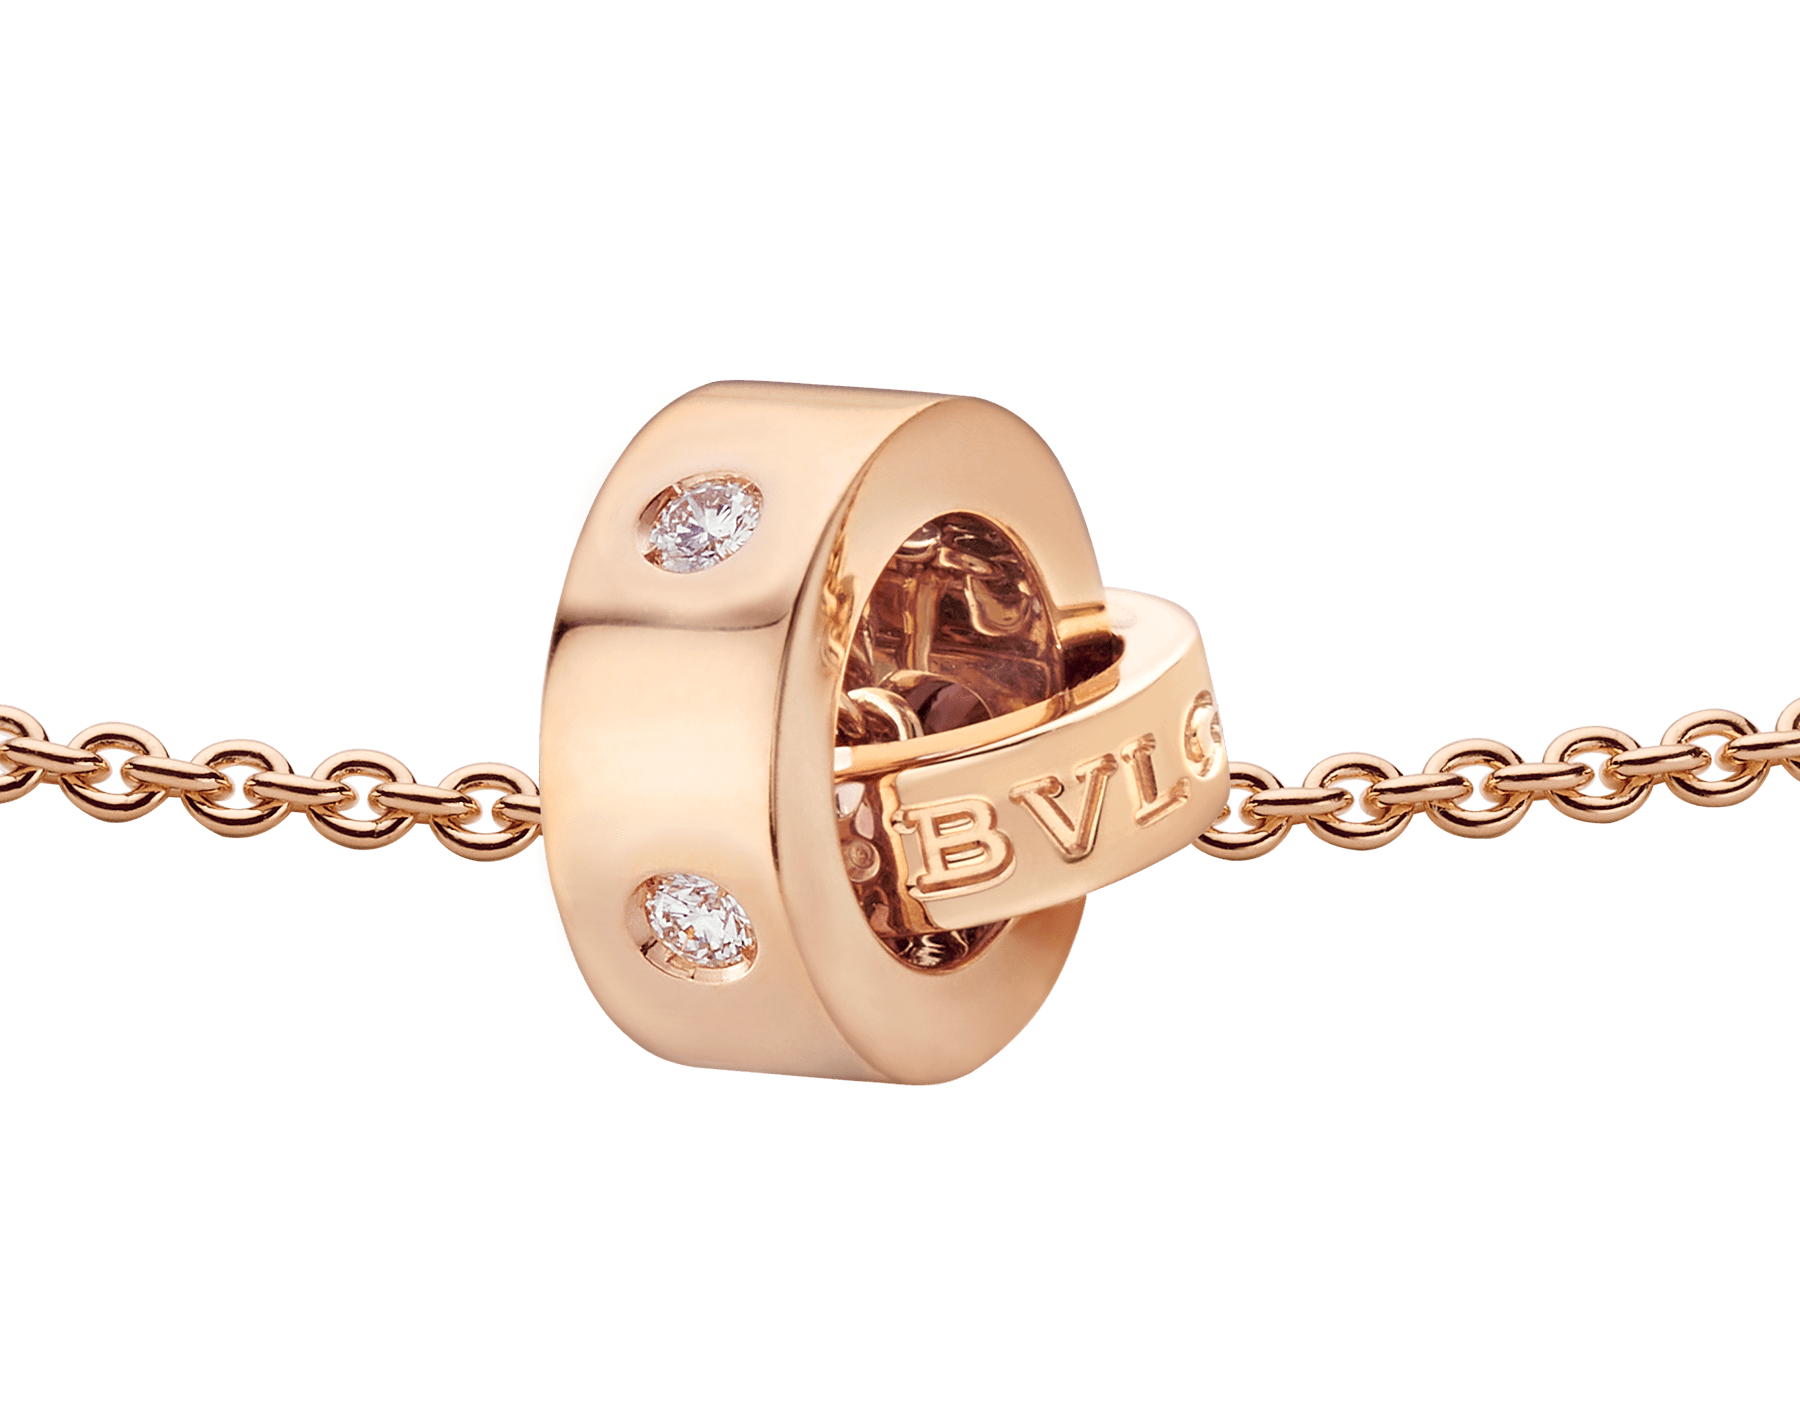 BVLGARI BVLGARI necklace with 18 kt rose gold chain and 18 kt rose gold pendant set with five diamonds. 354028 image 3